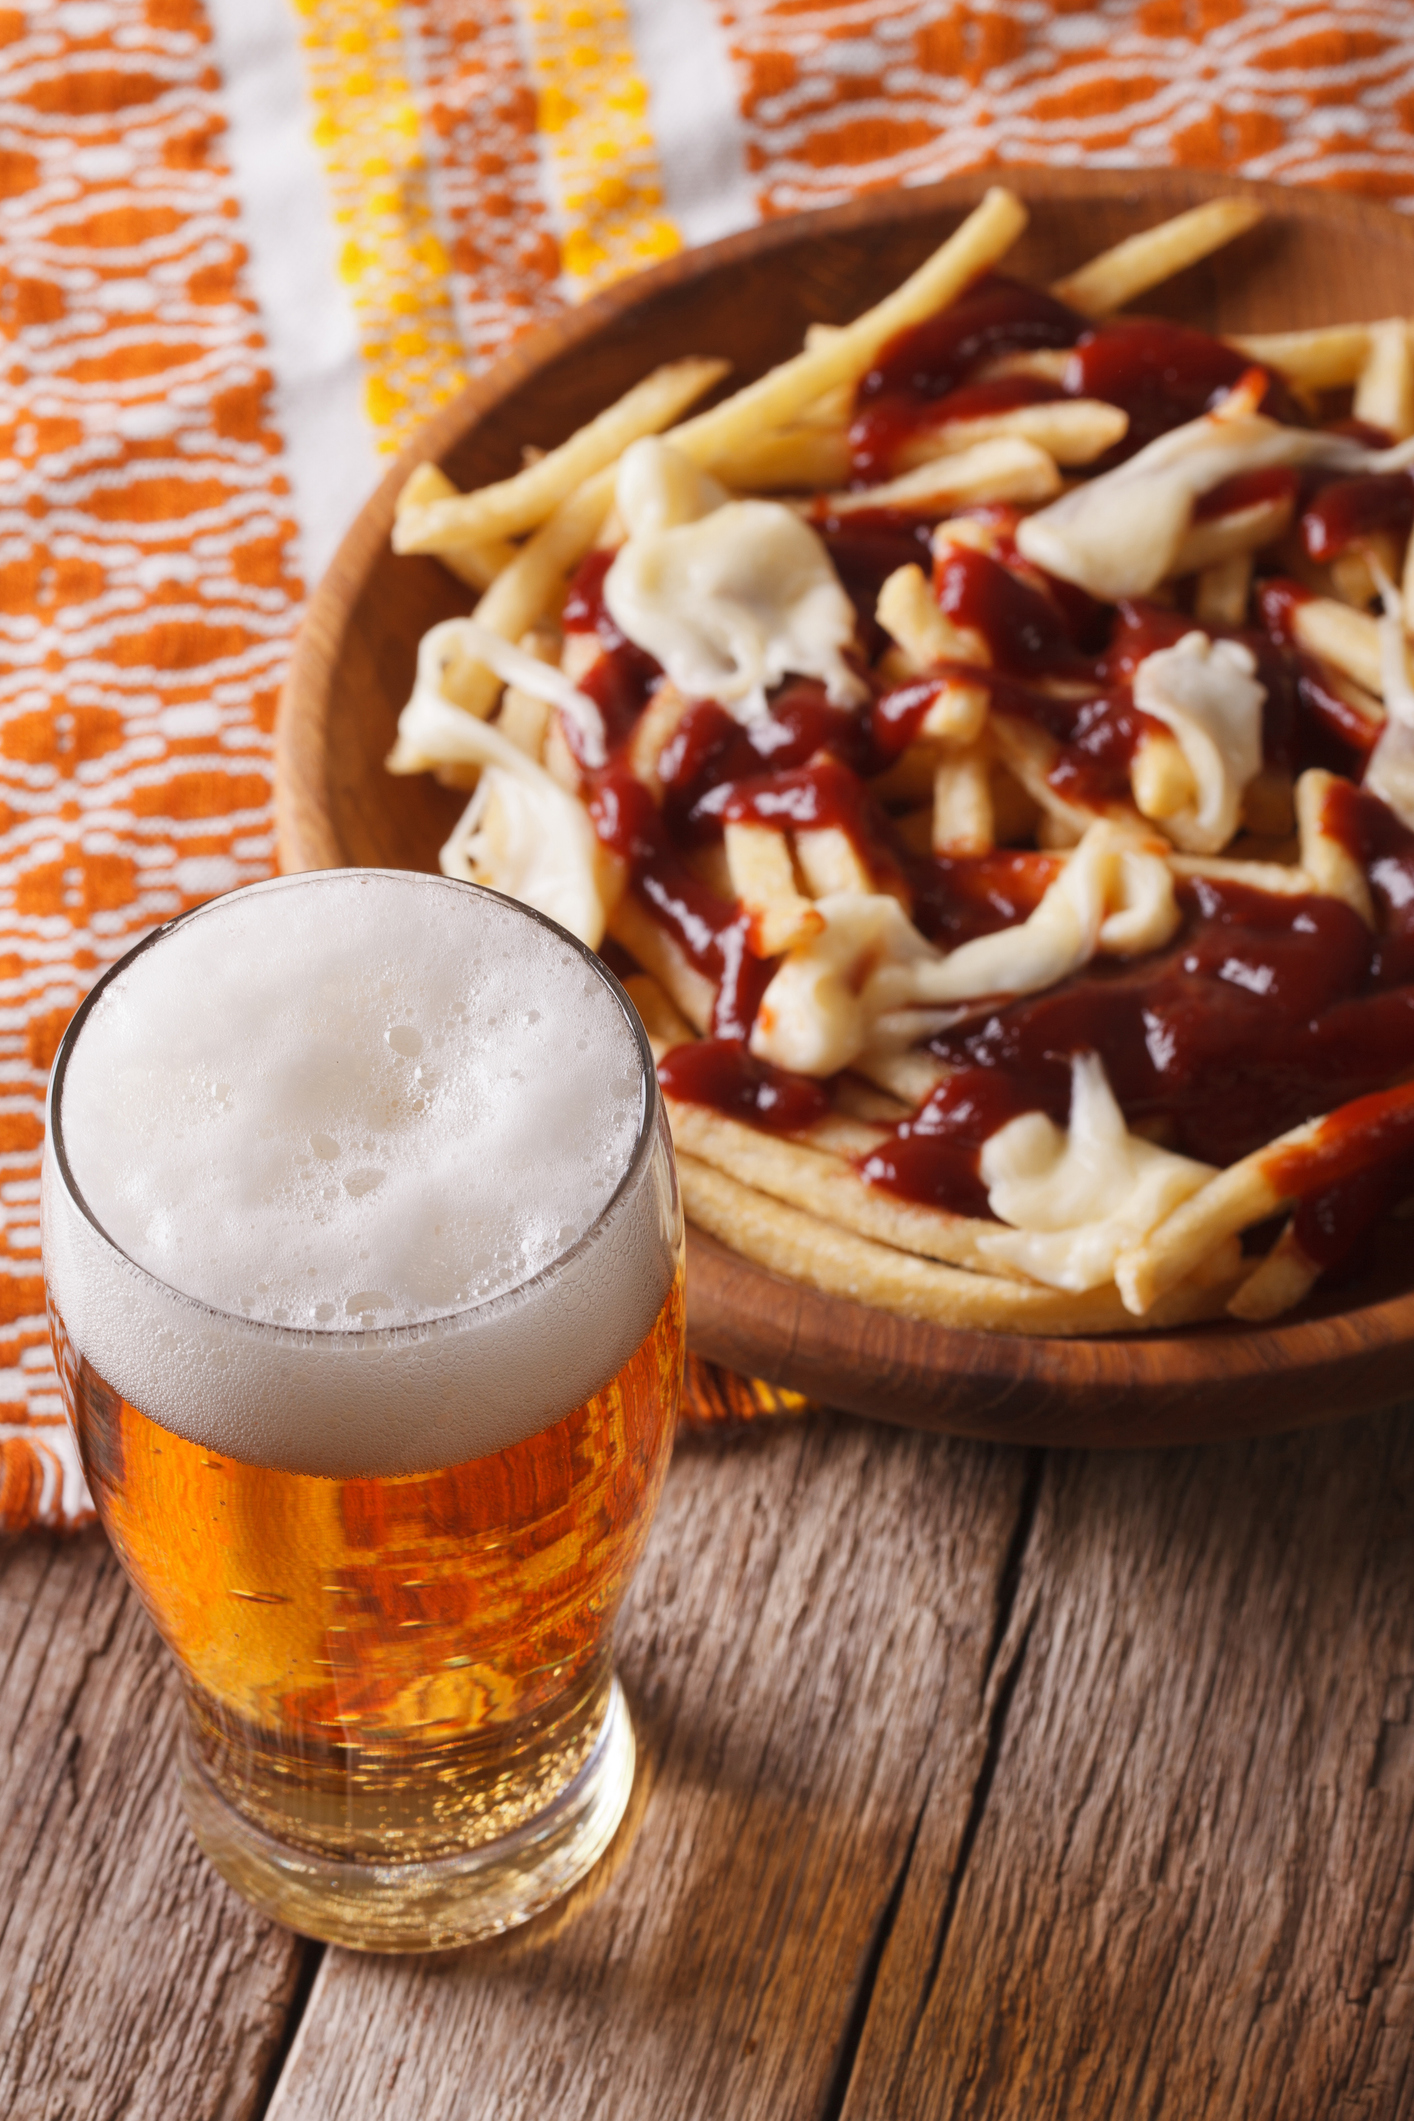 Canadian food: beer and fries with sauce close-up. Vertical